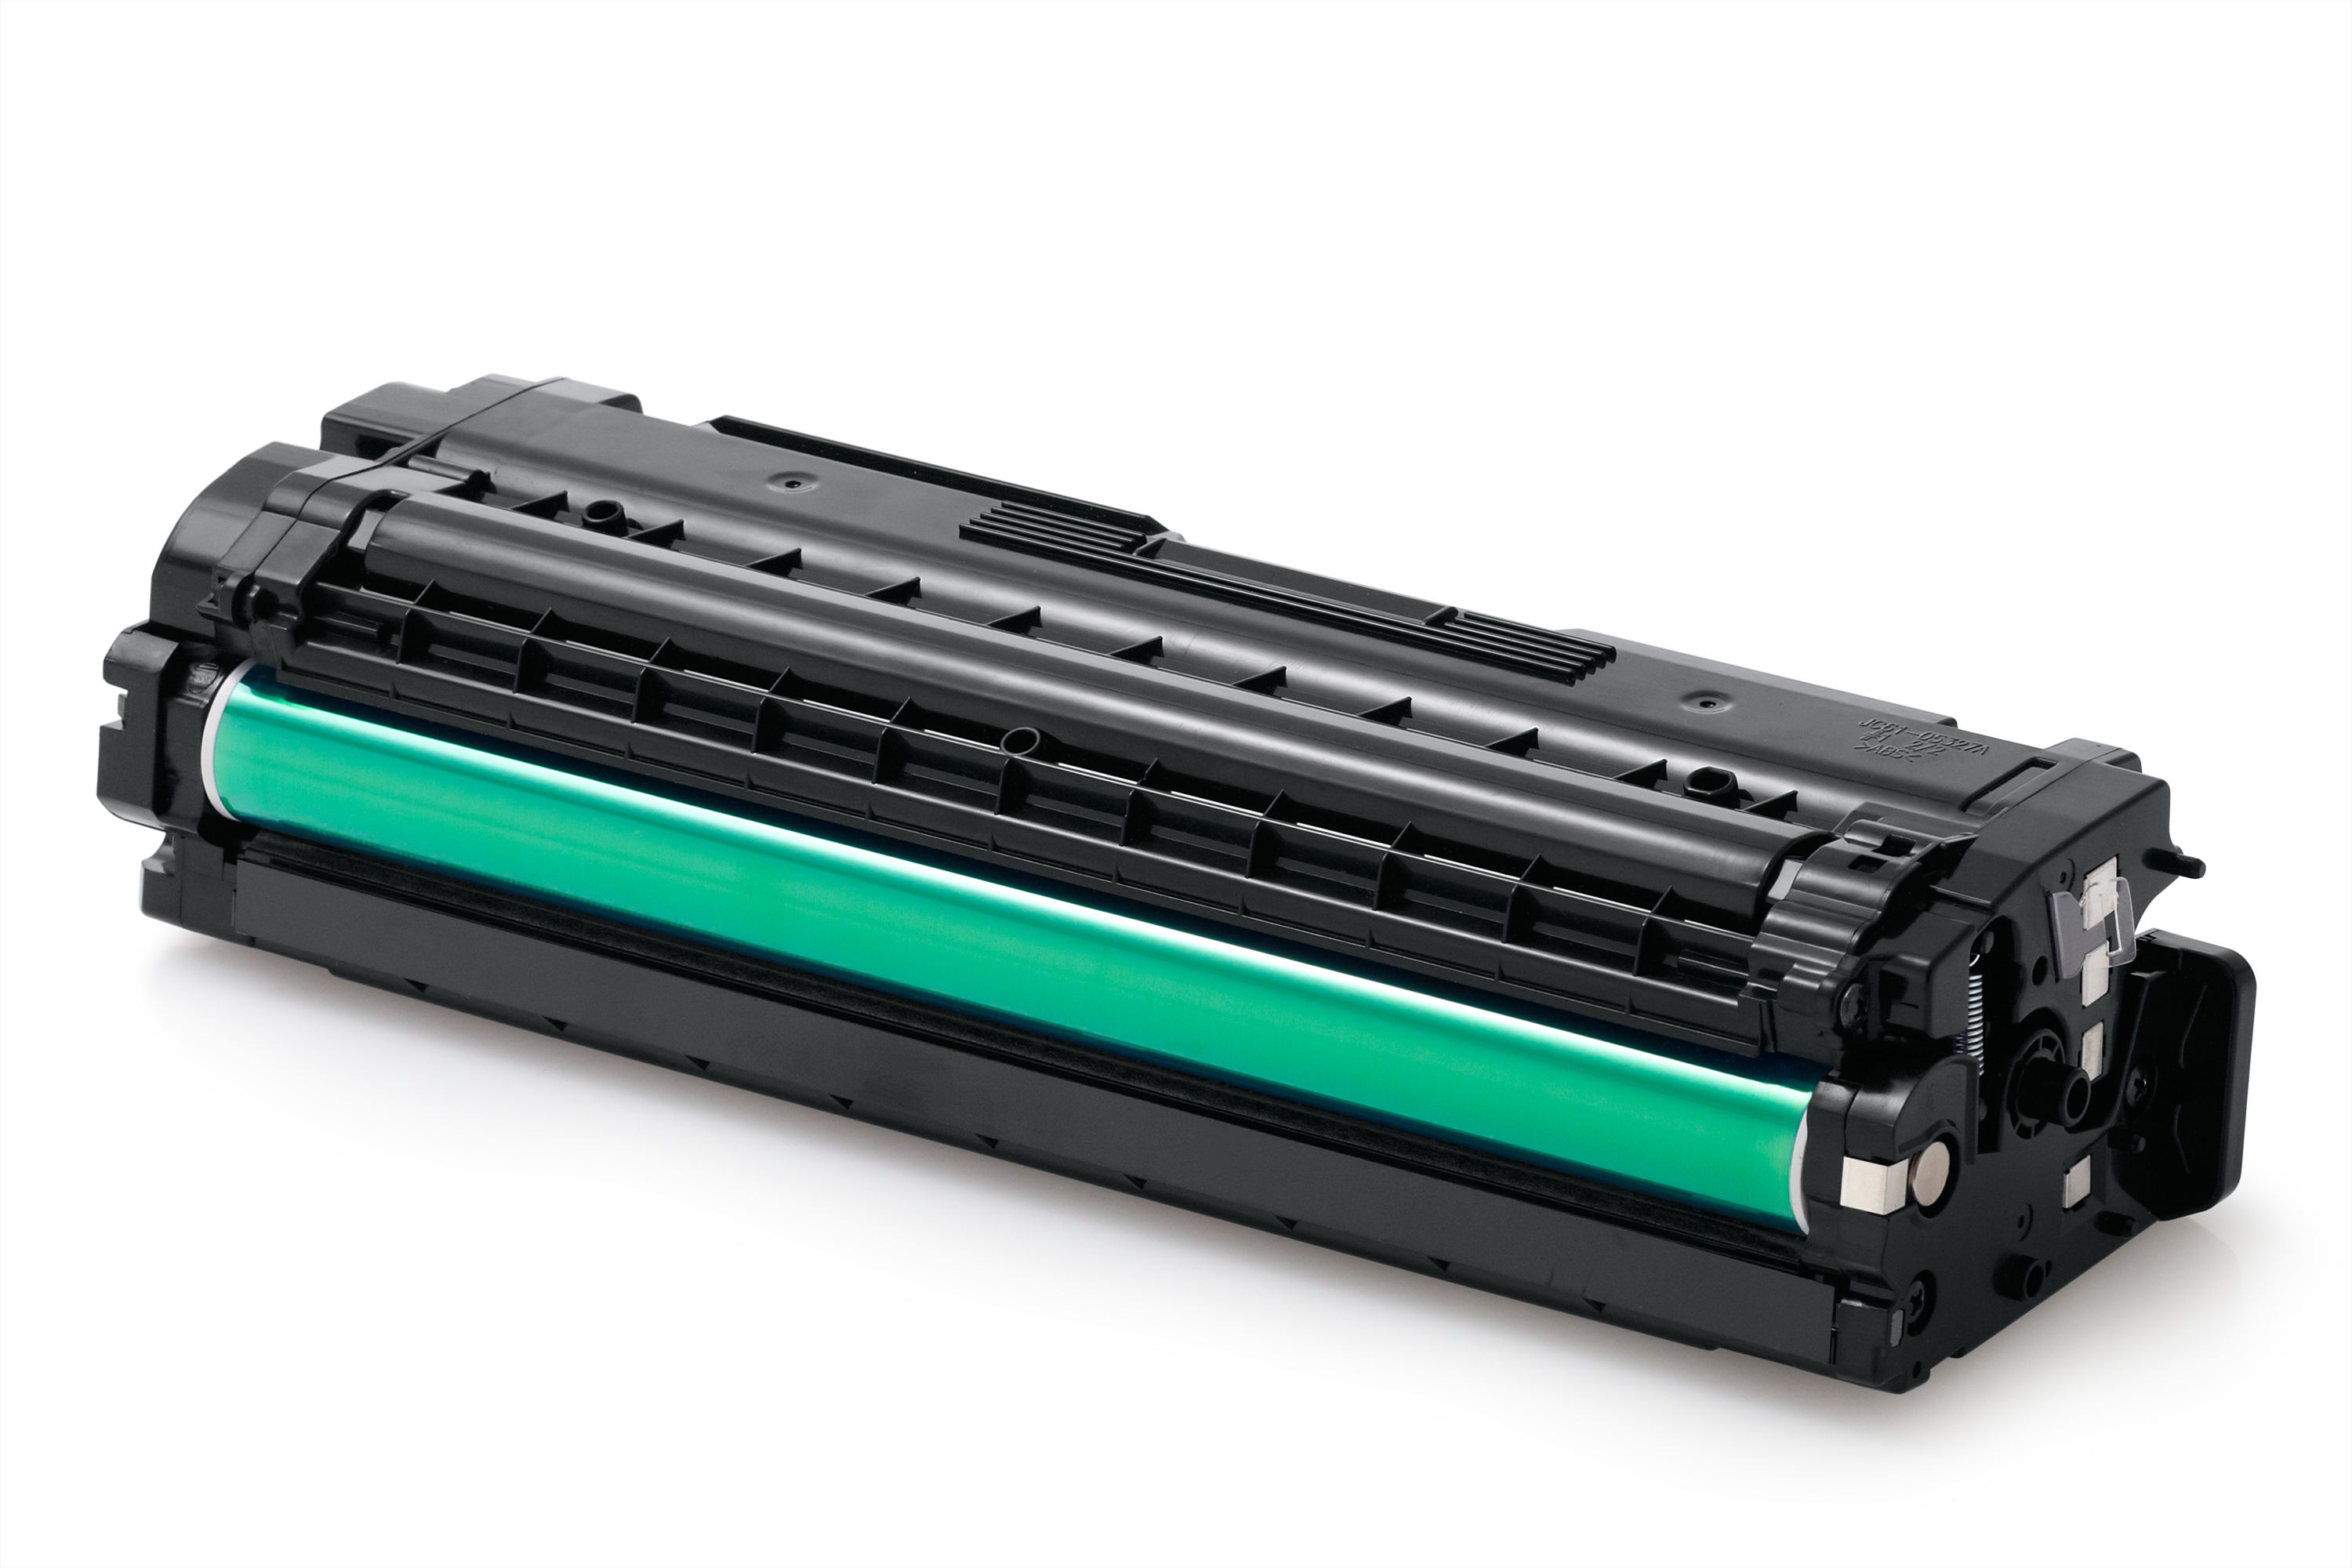 Remanufactured Samsung CLT-M506L Toner Cartridge (3.5k) CLT-M506S/ELS - rem01